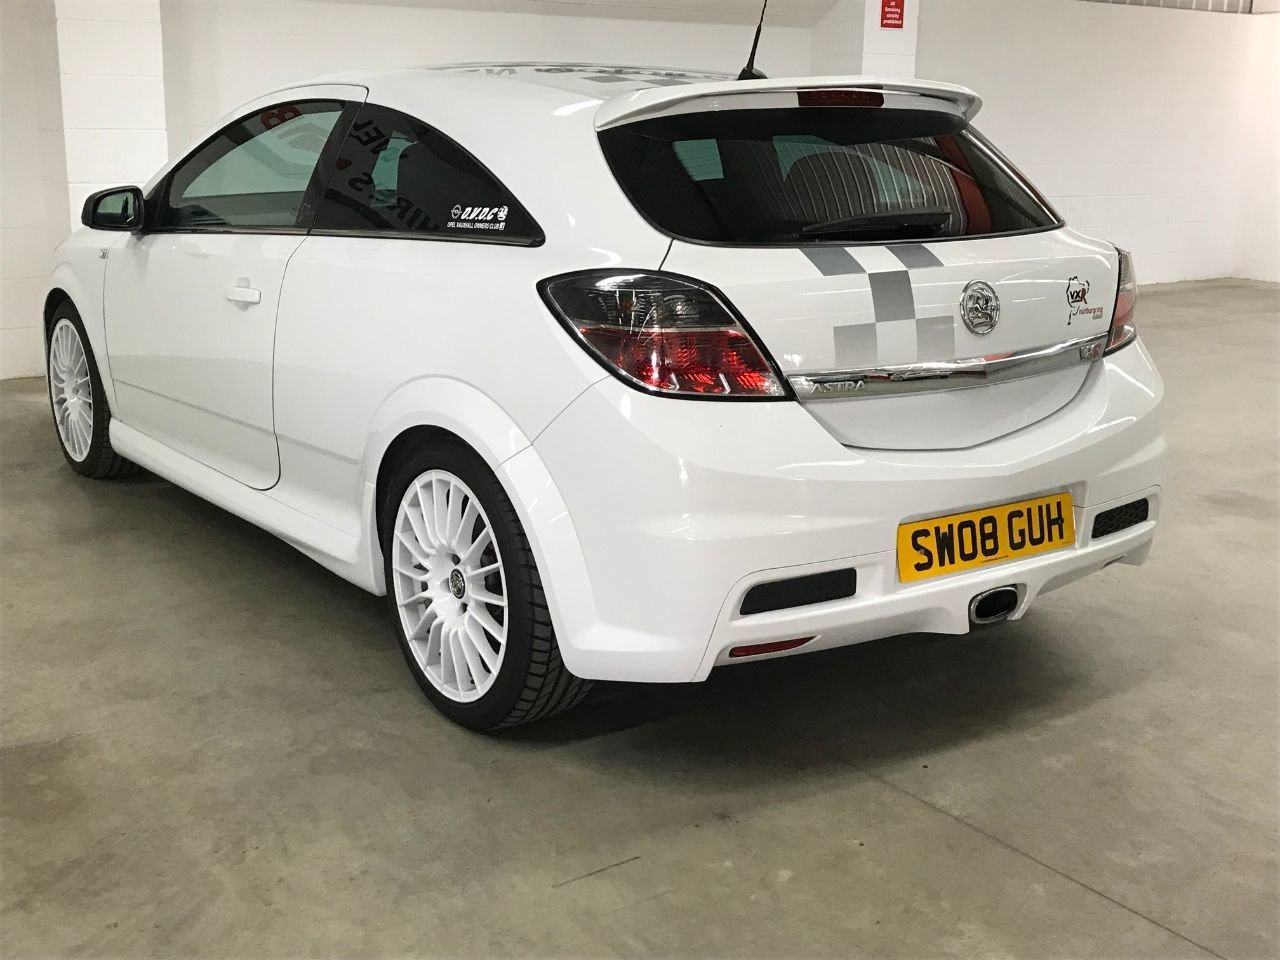 2008 VAUXHALL ASTRA VXR NURBURGRING For Sale (picture 5 of 5)